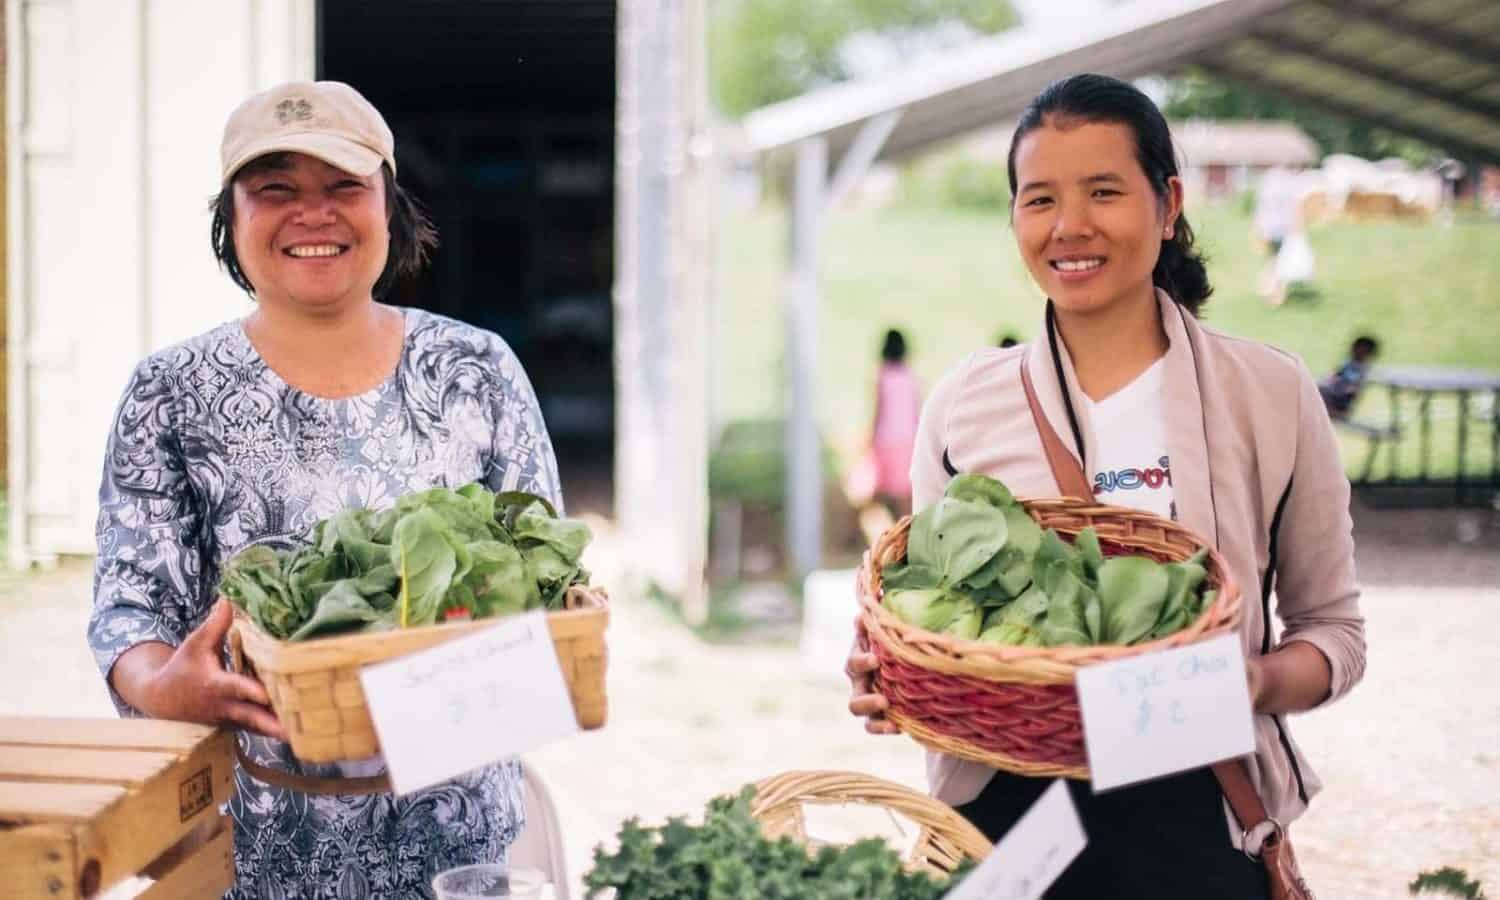 New Roots for Refugees supports refugees in Kansas City gain independence through a farmer education and training program.